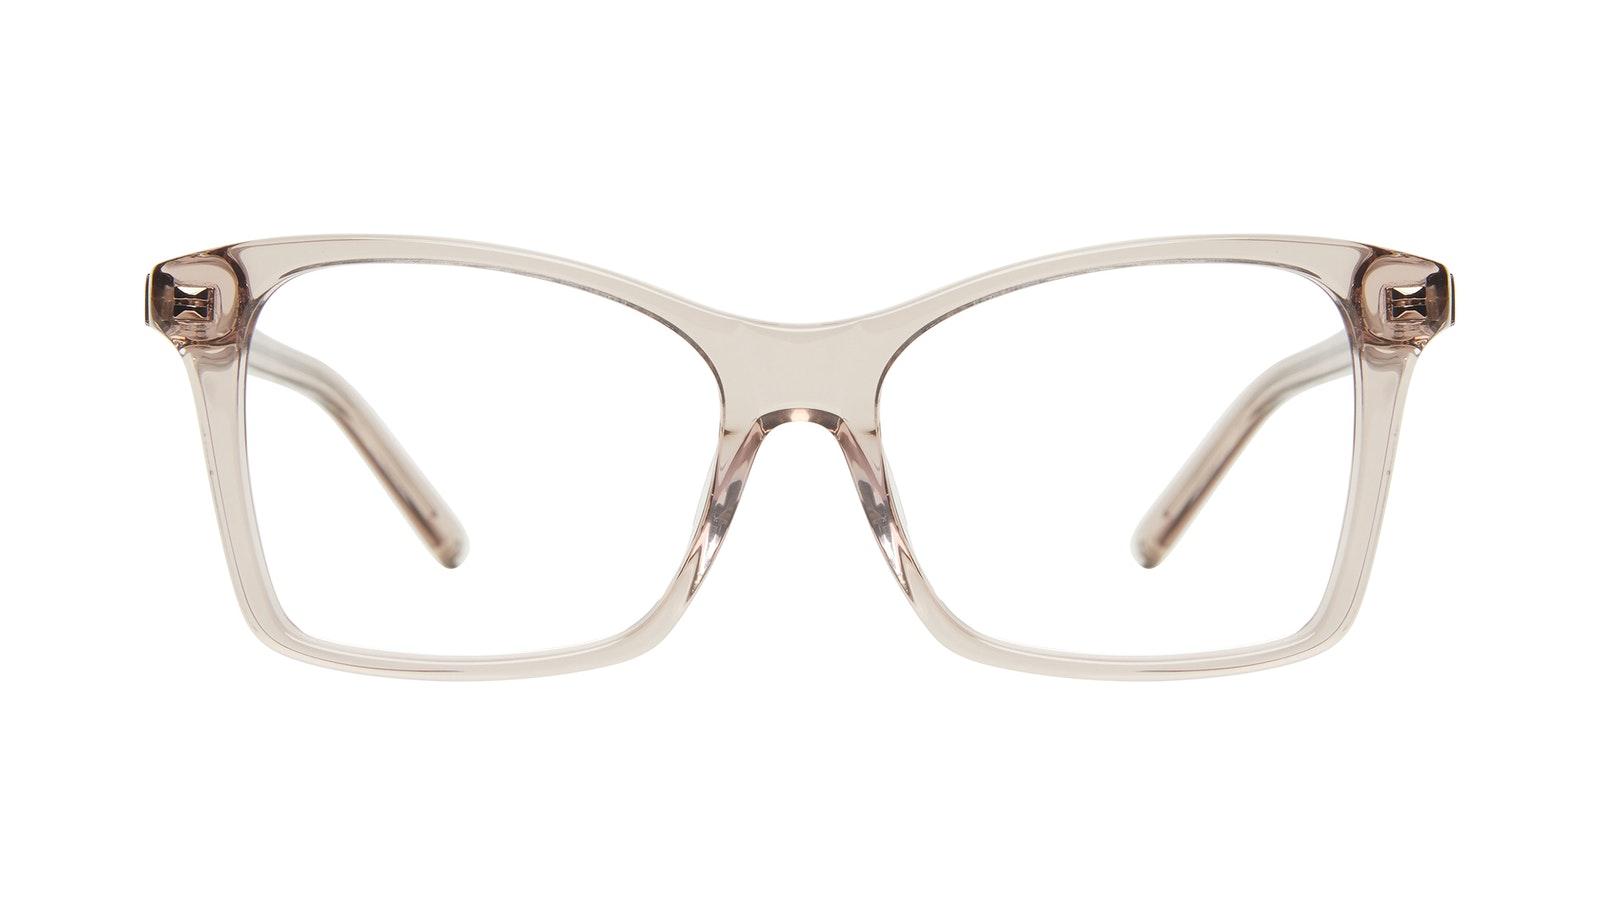 Affordable Fashion Glasses Square Eyeglasses Women Cadence Sand